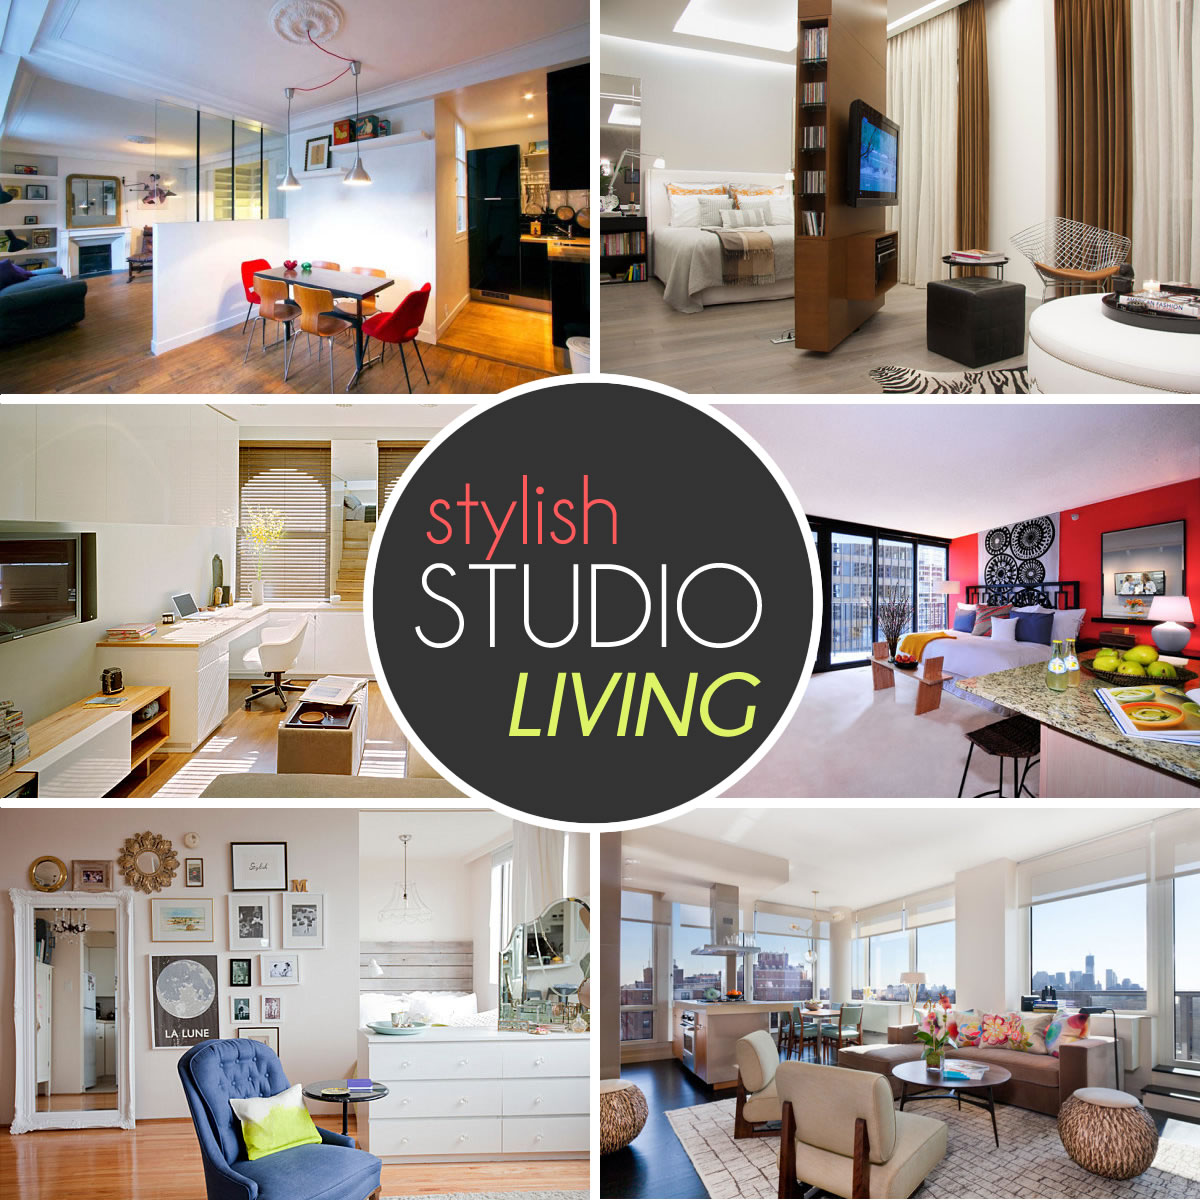 The design lover 39 s guide to stylish studio living for Studio apartment living ideas